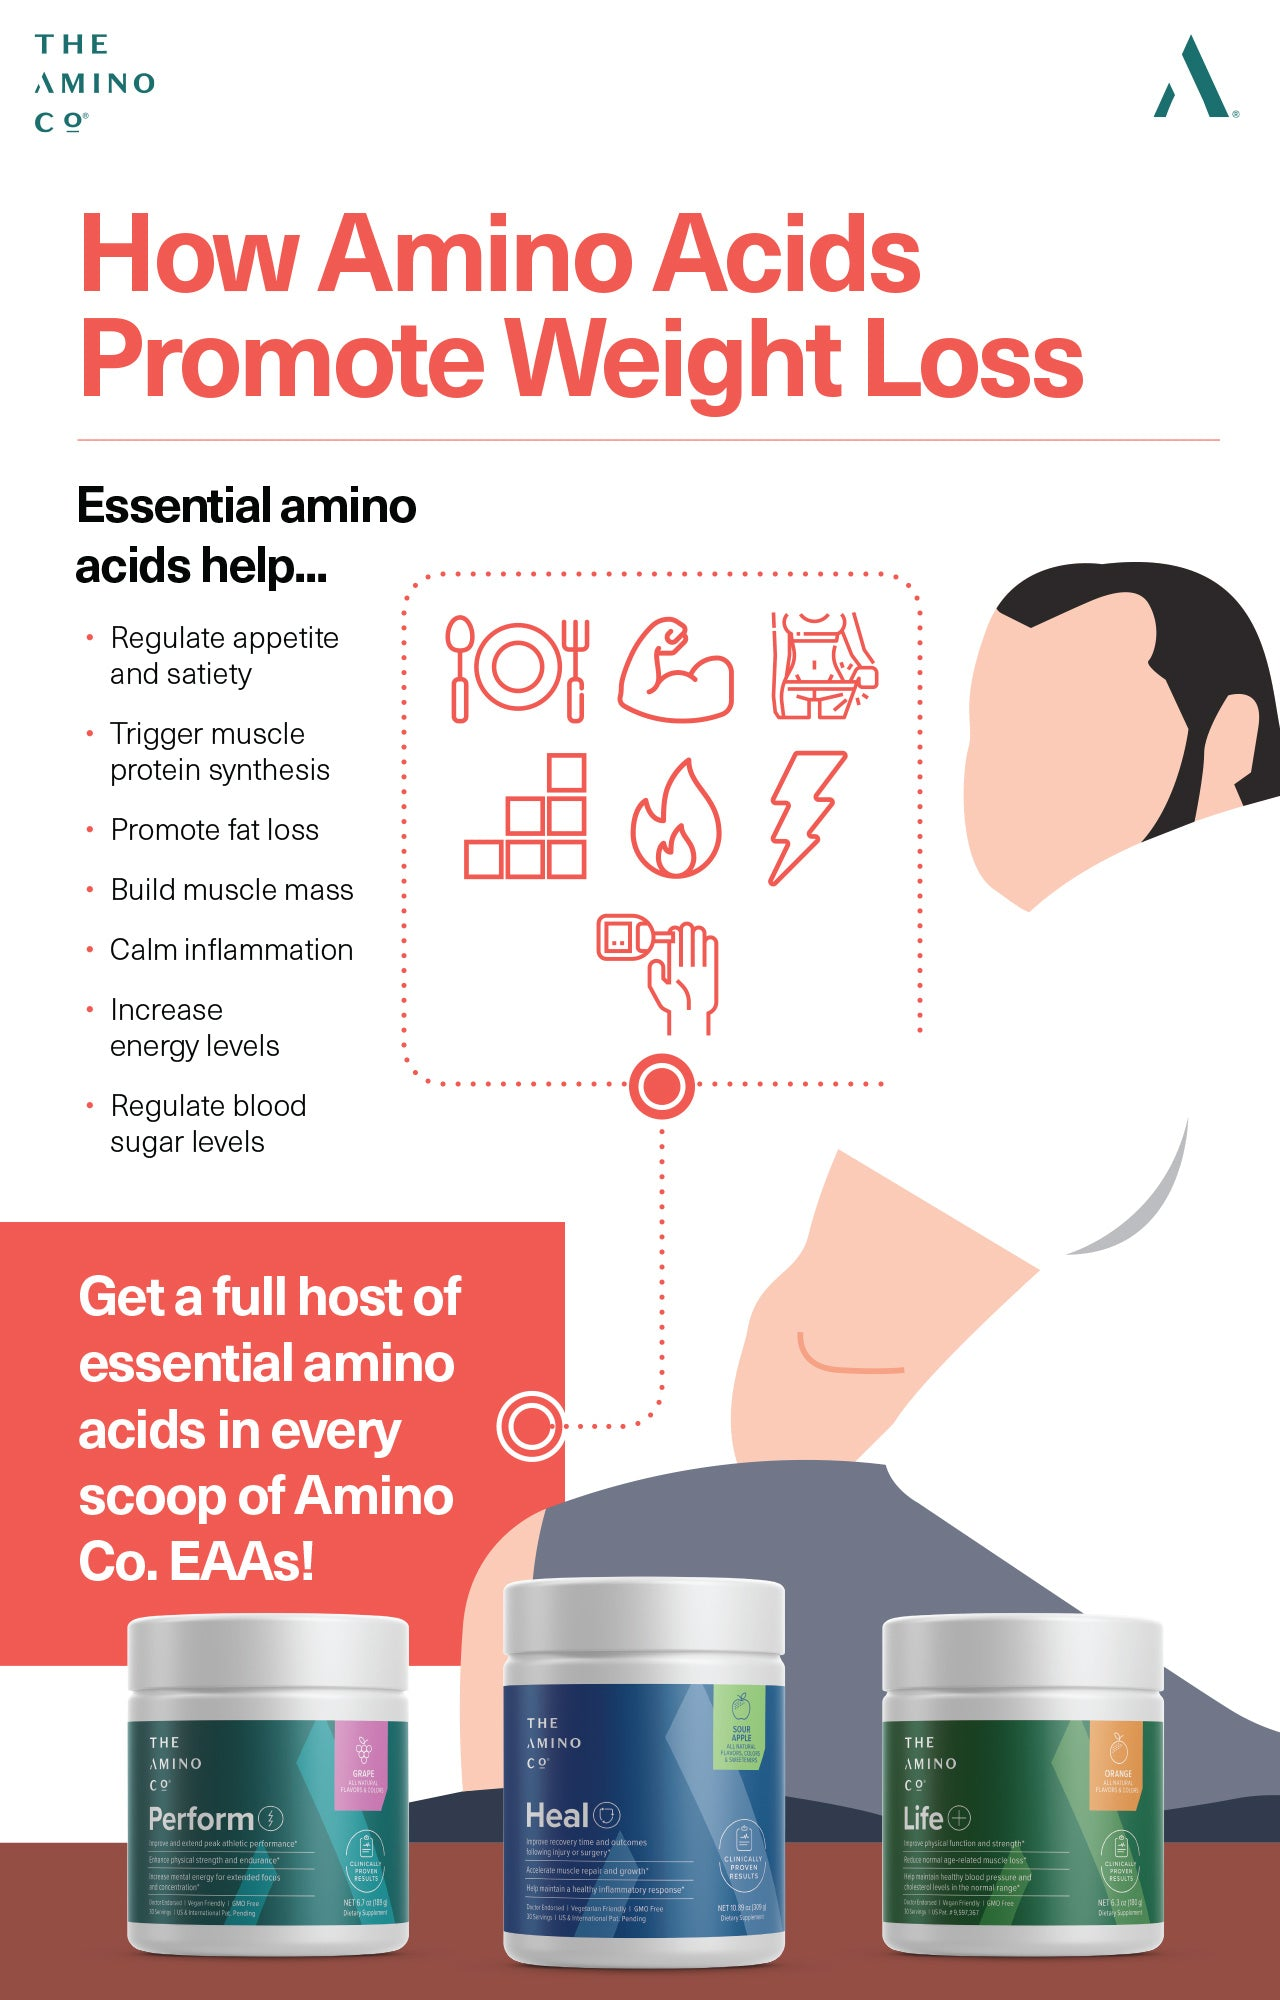 How Amino Acids Promote Weight Loss